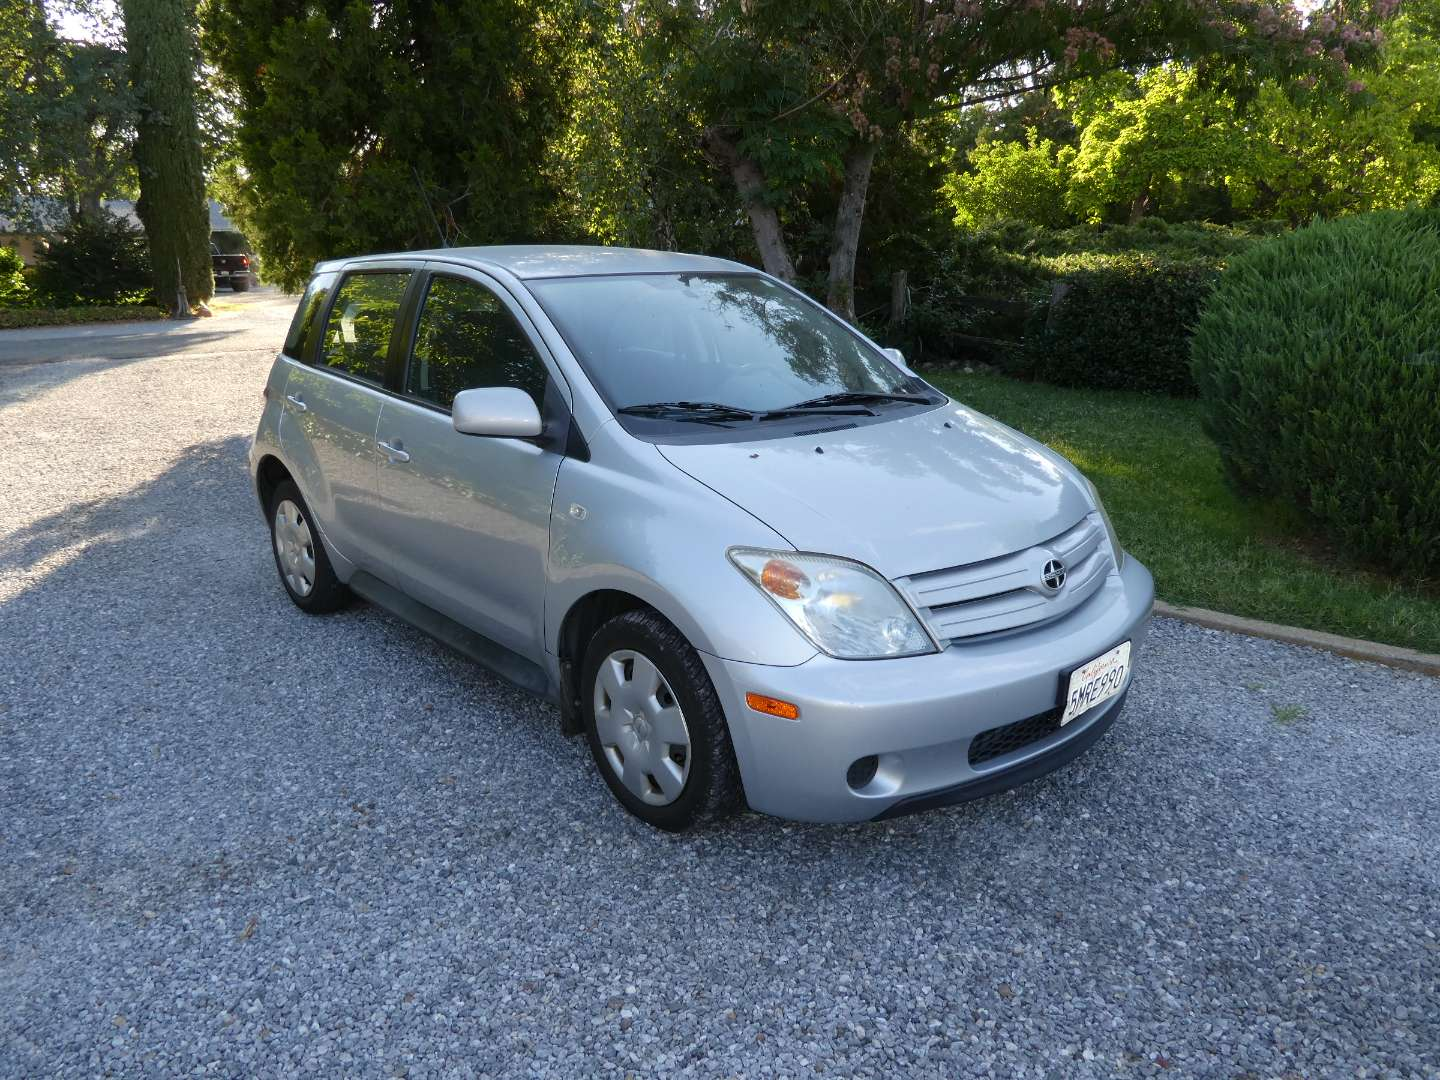 Lot # 83 - 2005 Toyota Scion XA - Low Miles 117,953 Smogged & Registered